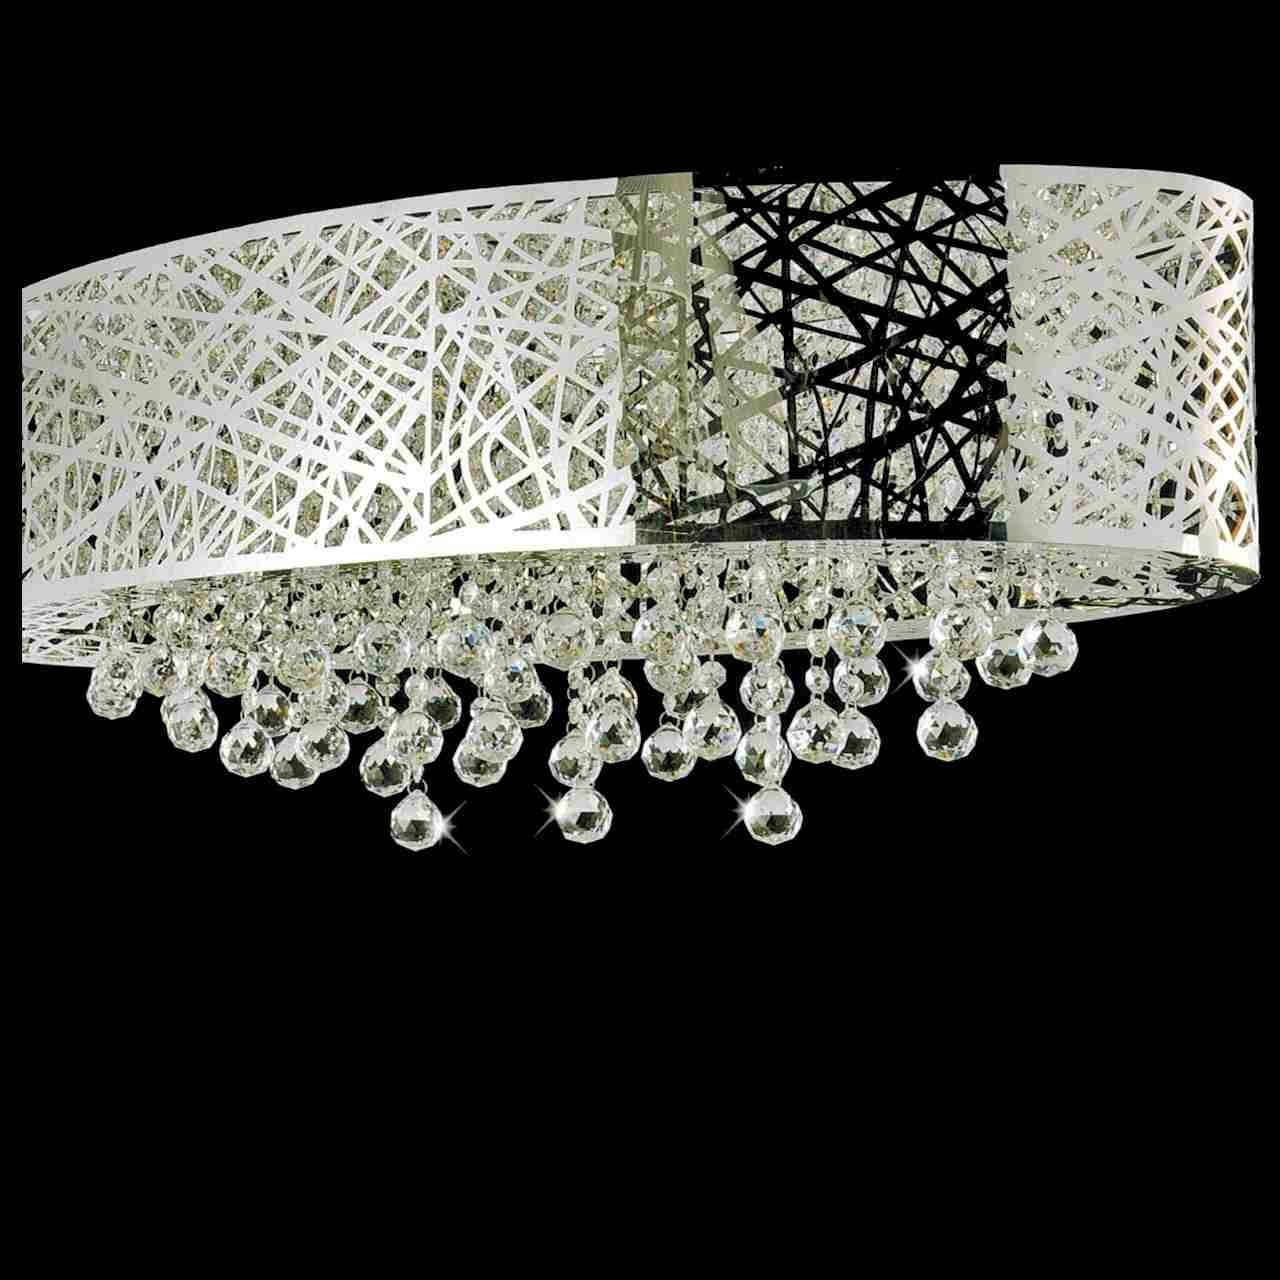 2019 Brizzo Lighting Stores Within Wall Mount Crystal Chandeliers (View 15 of 20)